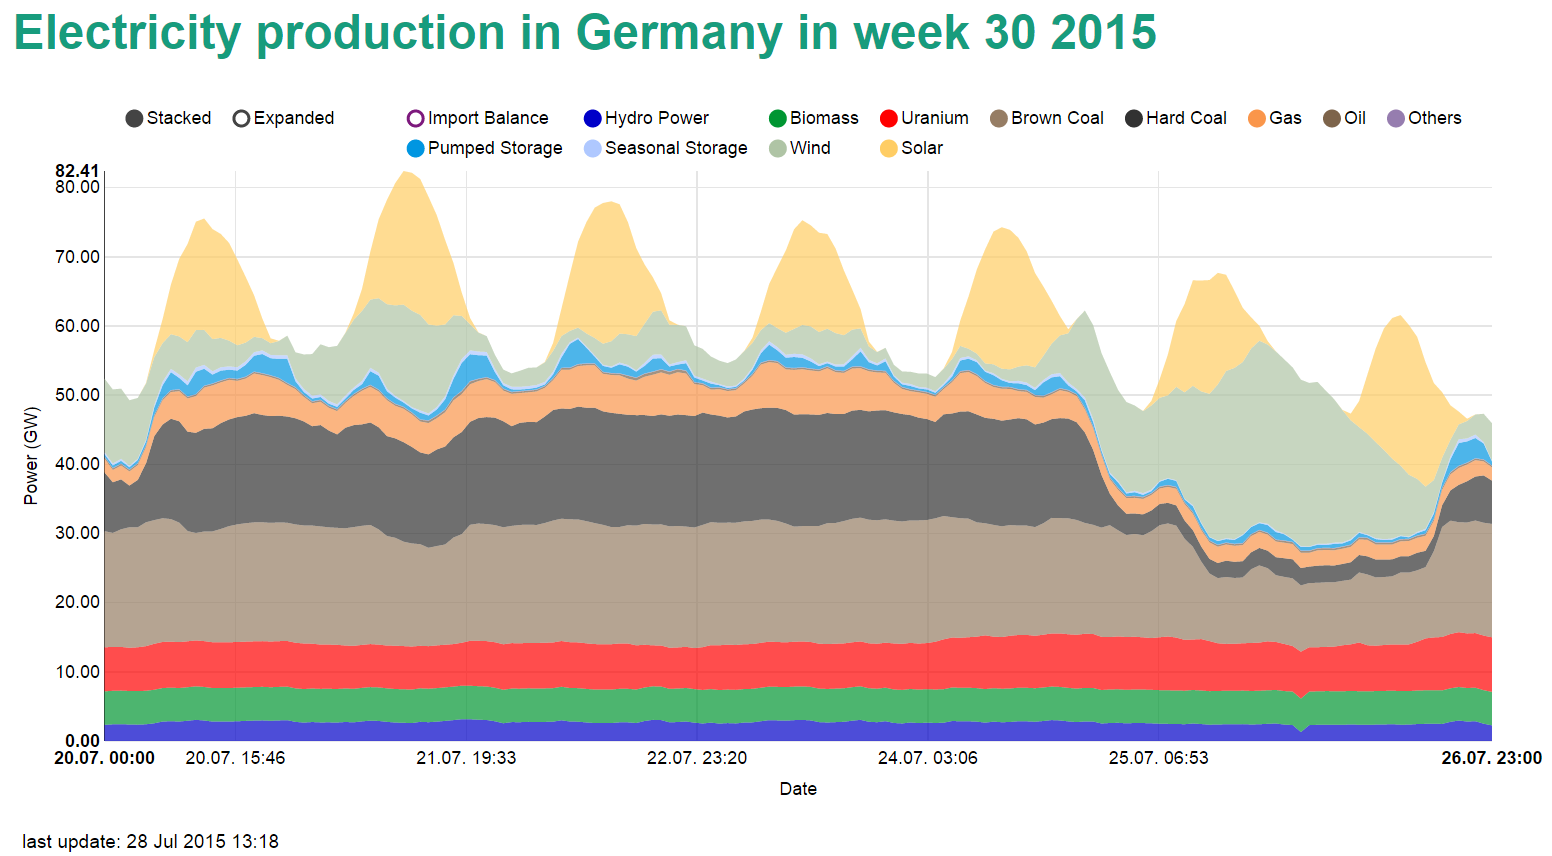 Power production in week 30 of 2015 in Germany